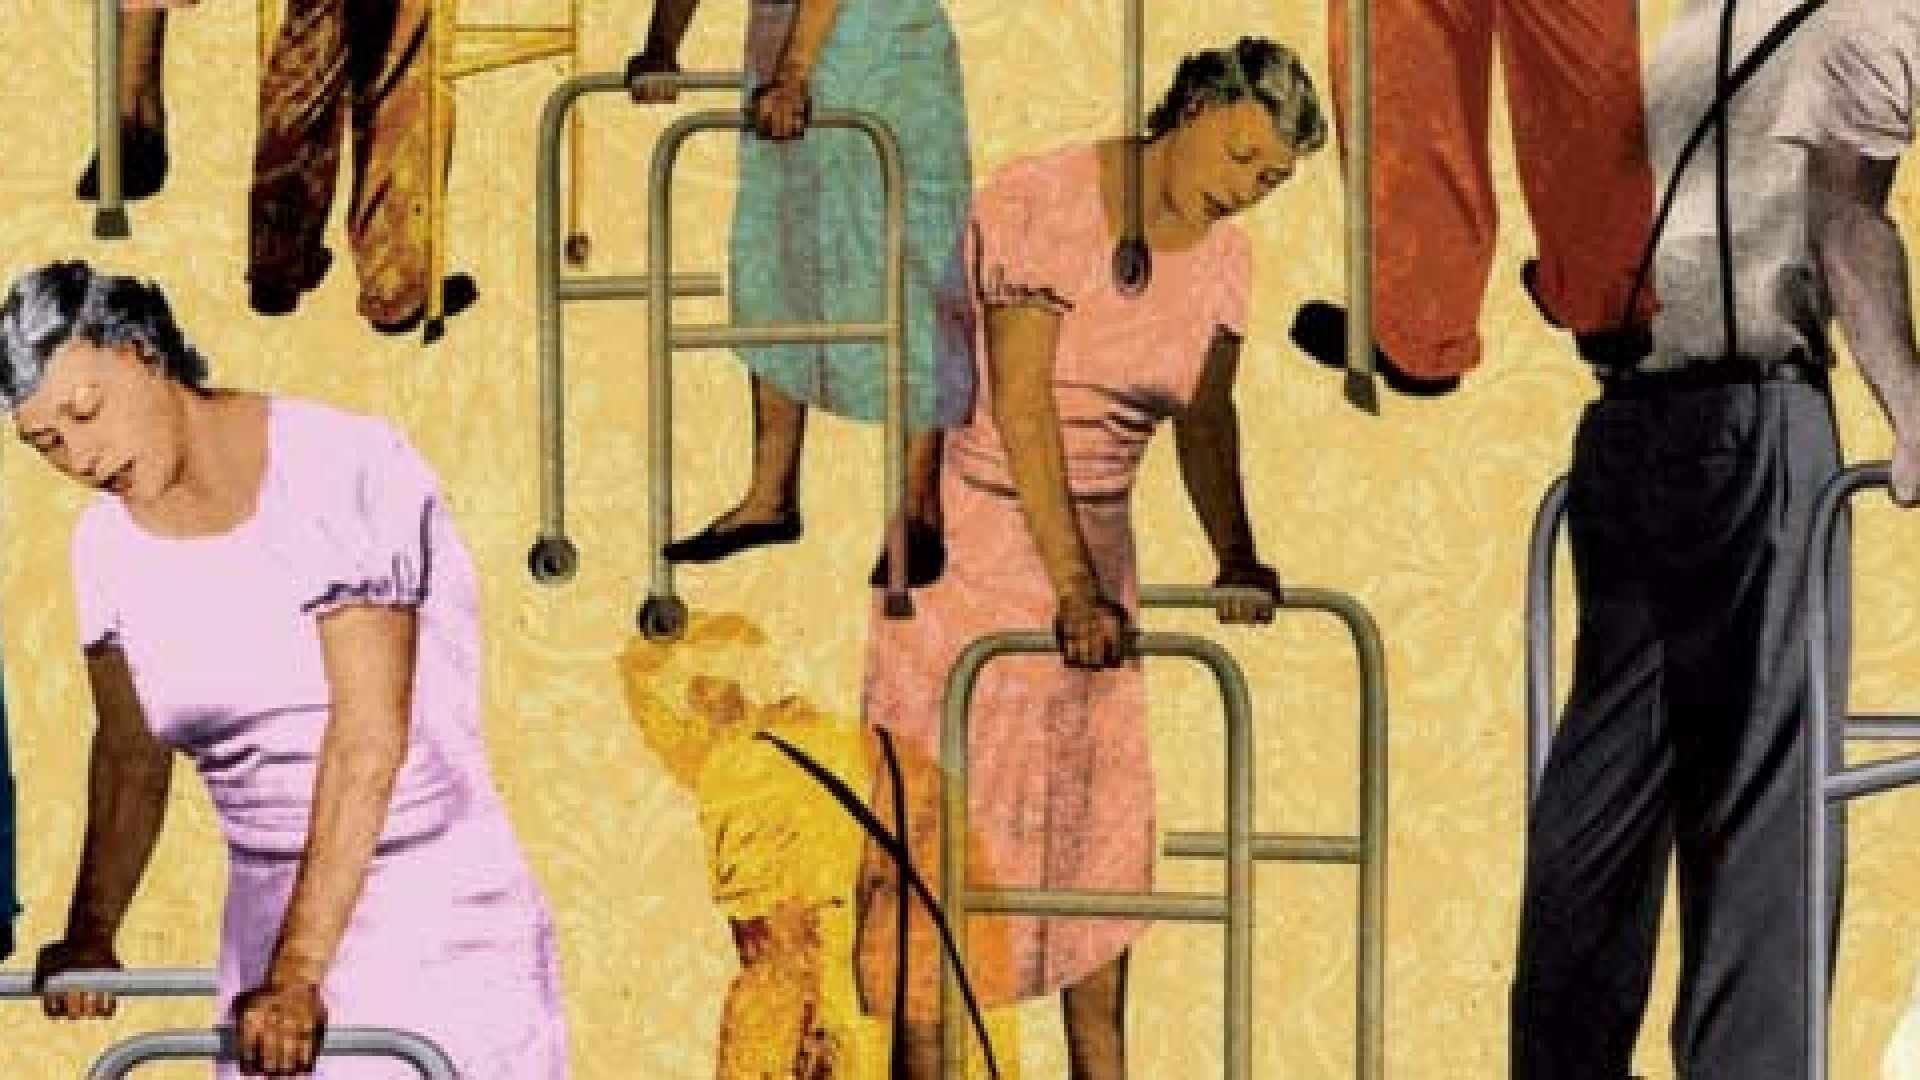 Hot Market: The Aging Population